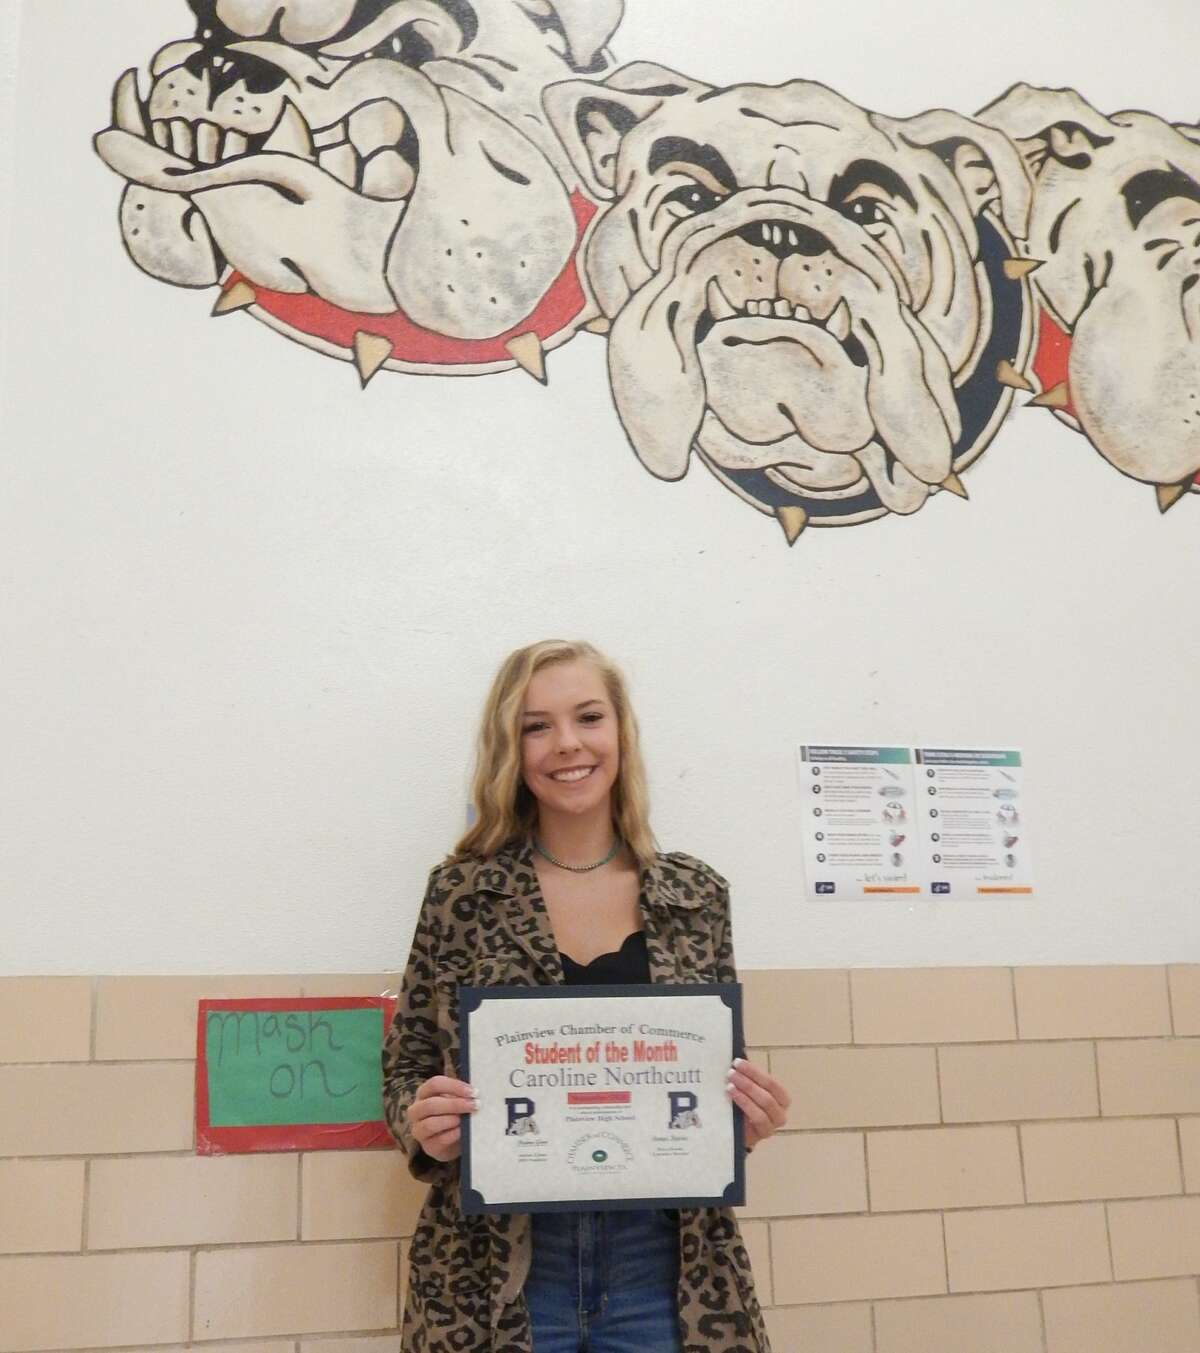 Caroline Northcutt was chosen as the September 2020 Student of the Month for the Plainview Chamber of Commerce.